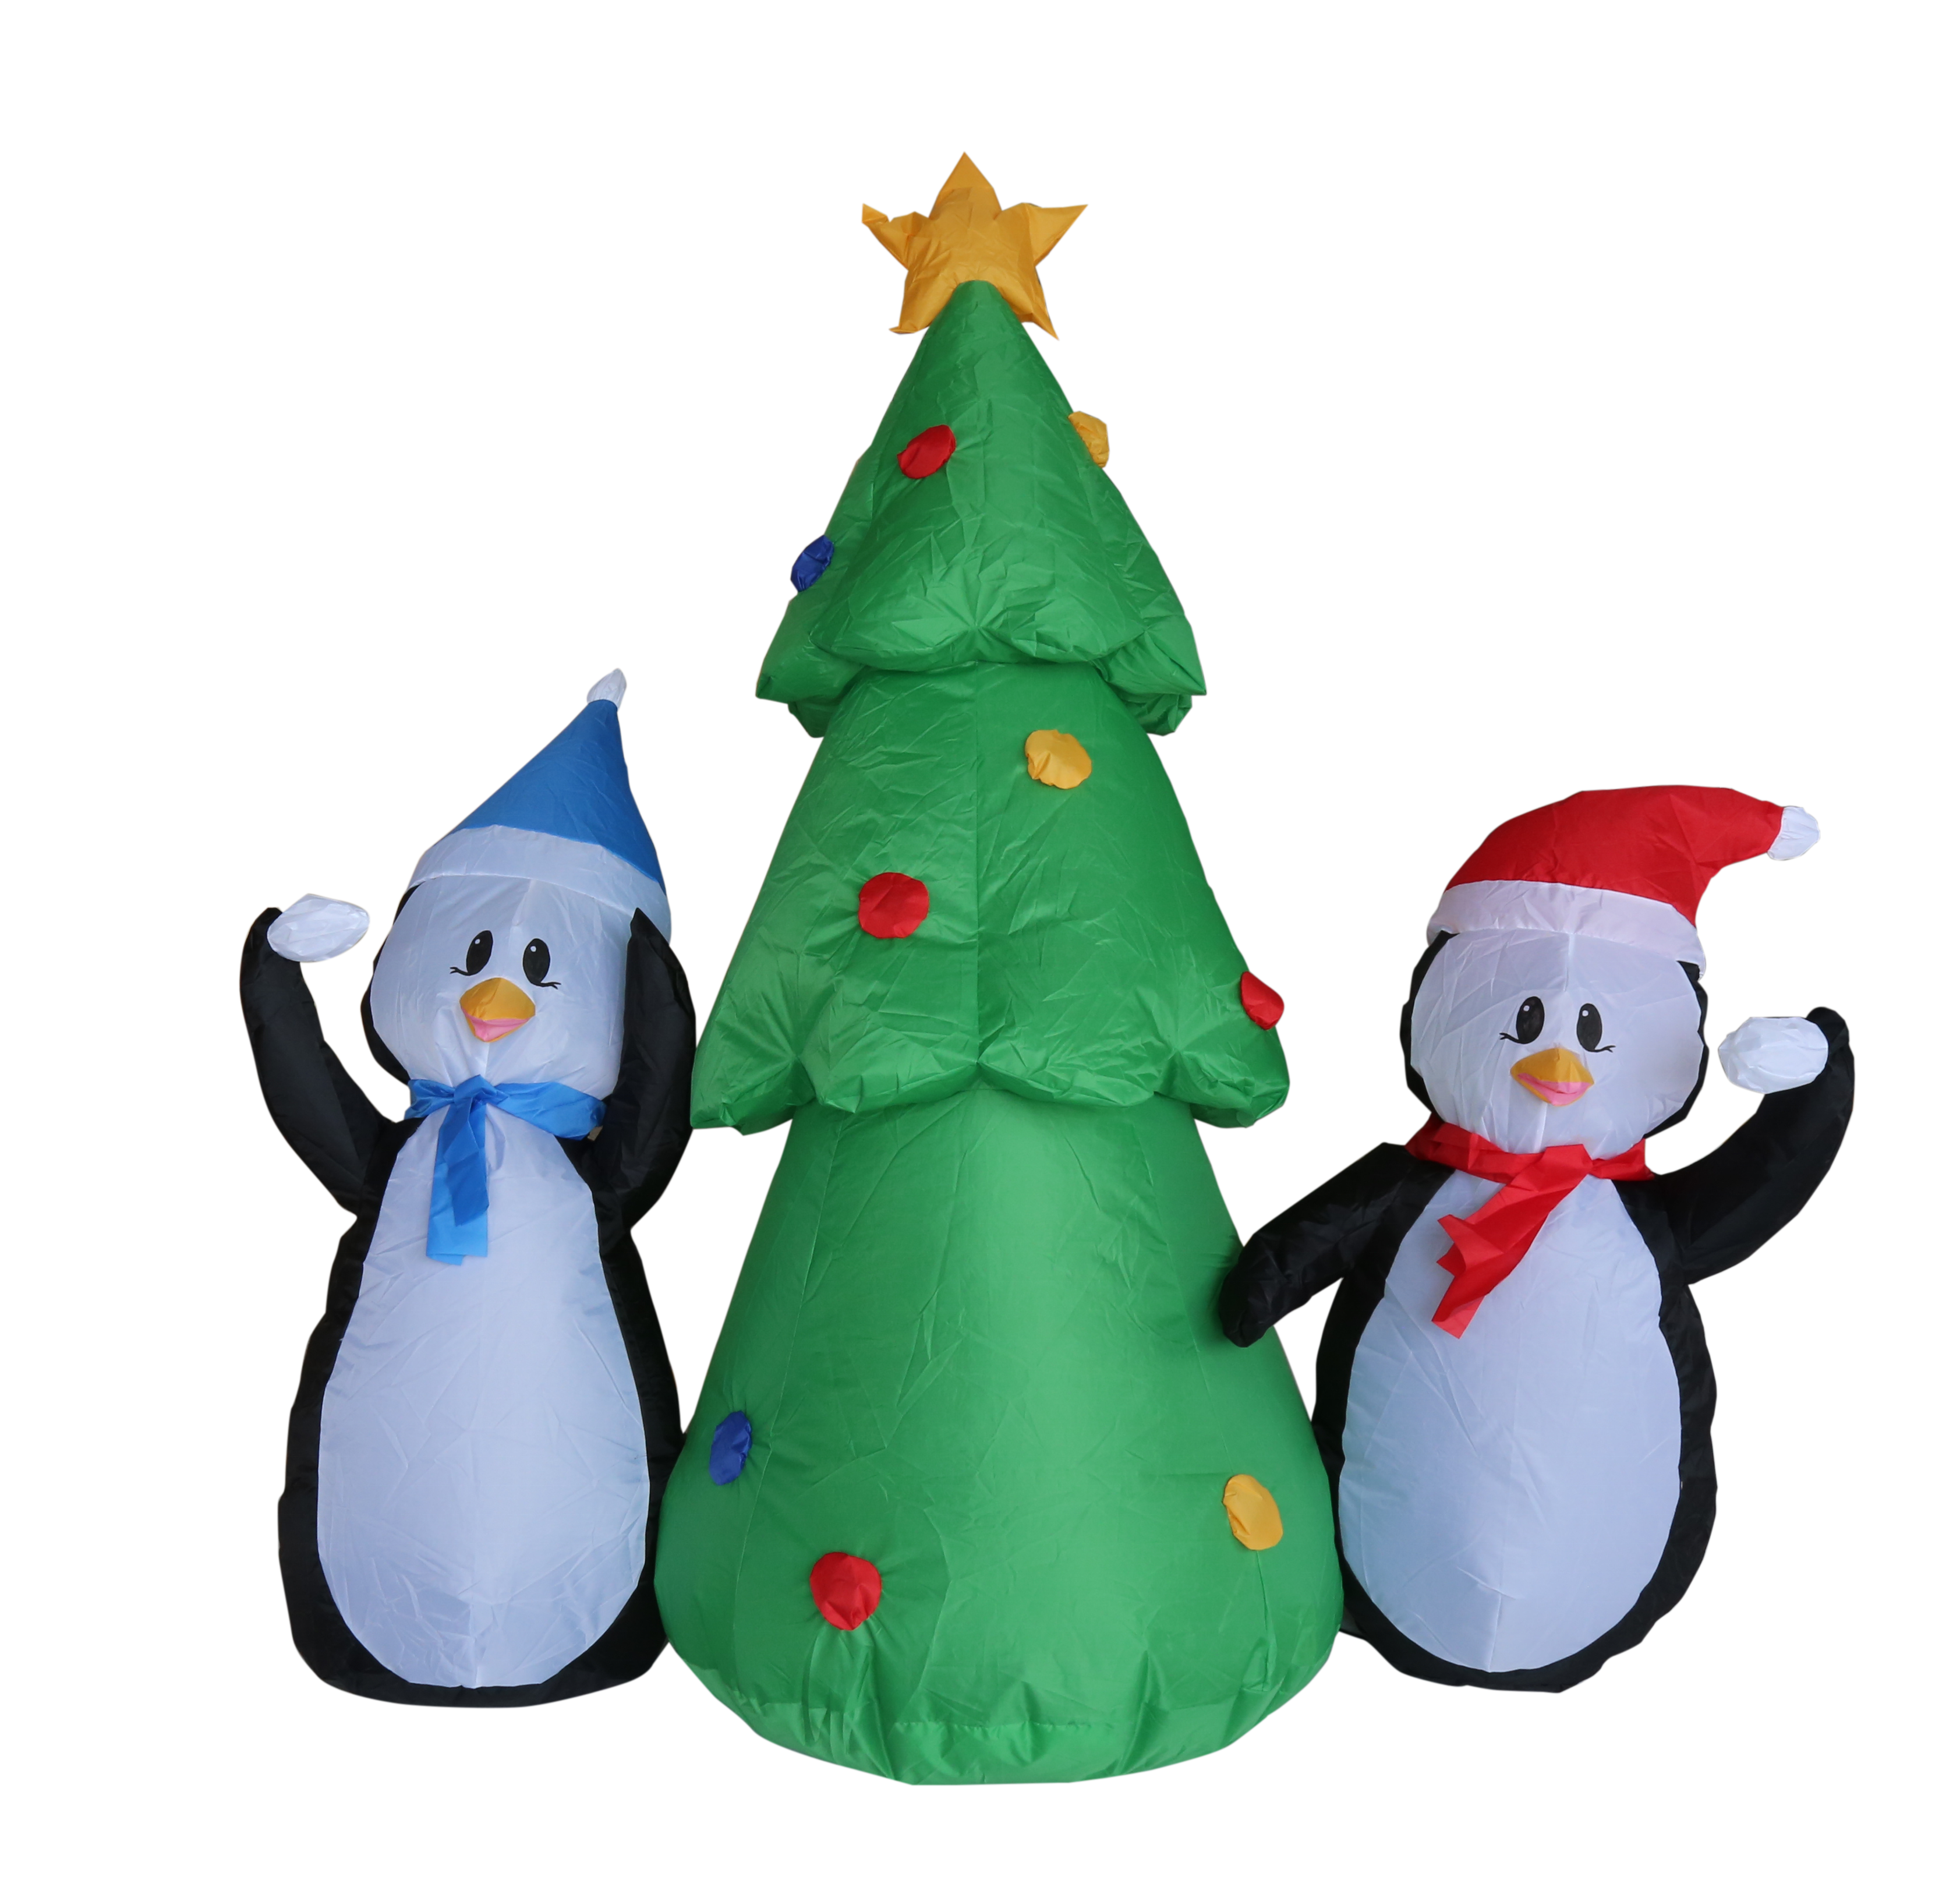 Funny Inflatable Outdoor Christmas Two Penguin And Tree Decorations Buy Inflatable Christmas Funny Inflatable Christmas Decorations Inflatable Outdoor Christmas Decorations Product On Alibaba Com